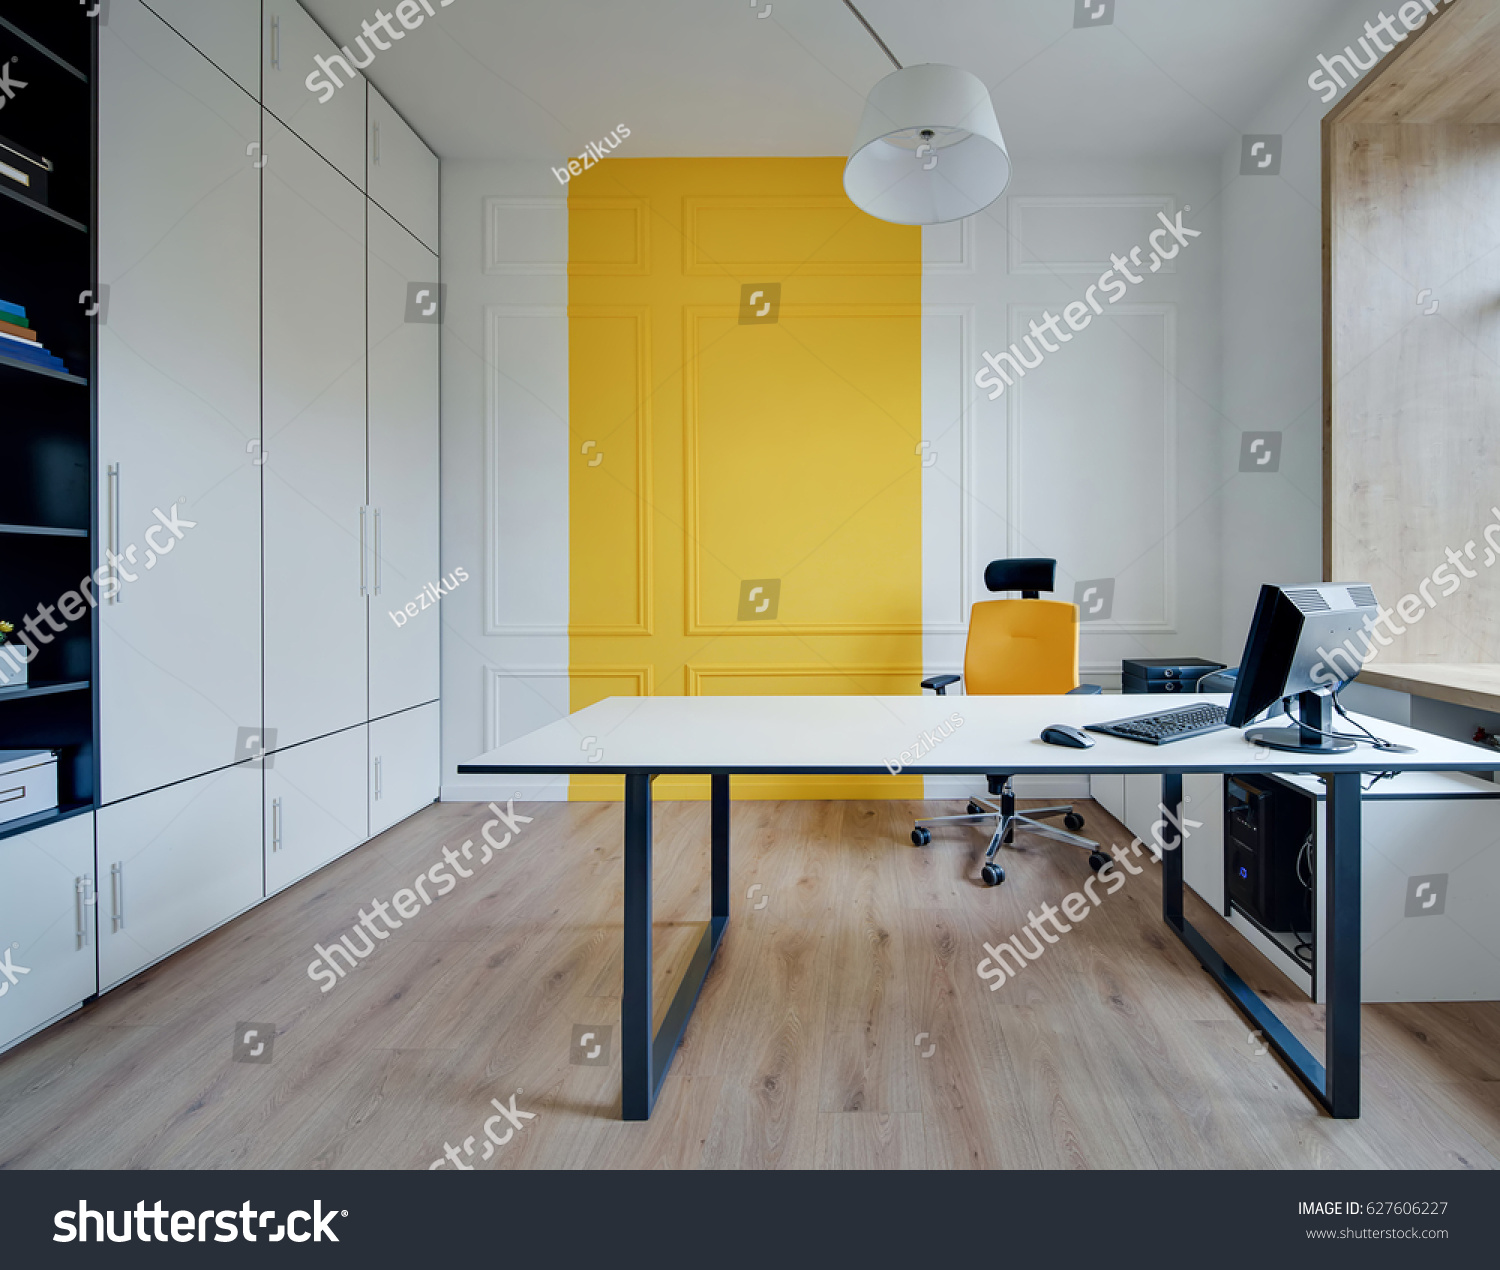 Room Modern Office Whiteyellow Walls Parquet Stock Photo & Image ...